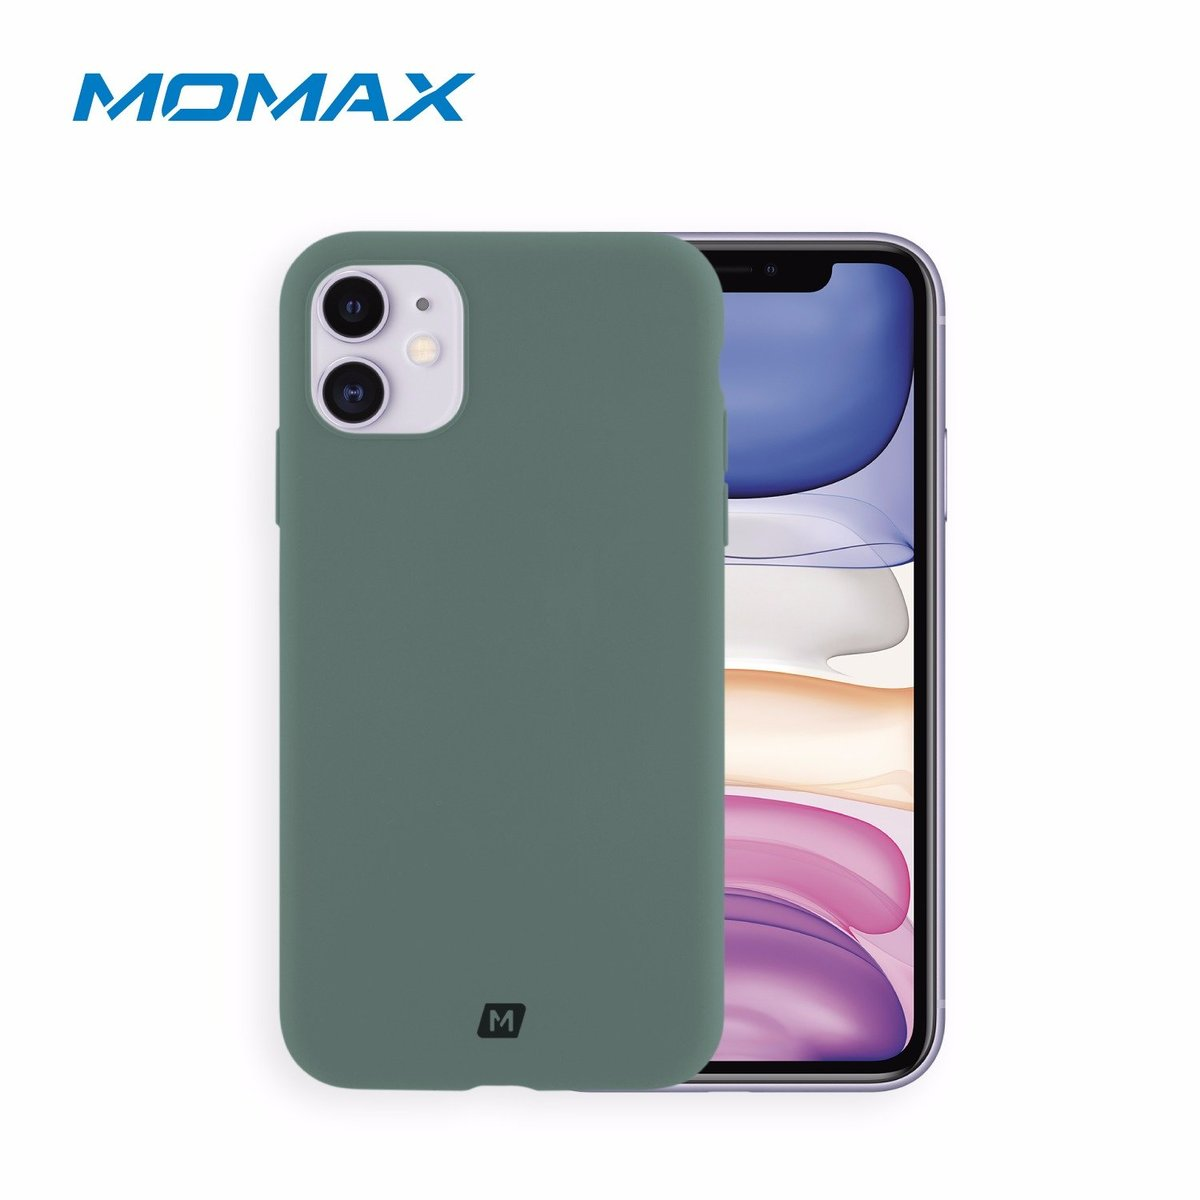 "MOMAX Silicone2.0 iPhone11 6.1"" Case (Green)"